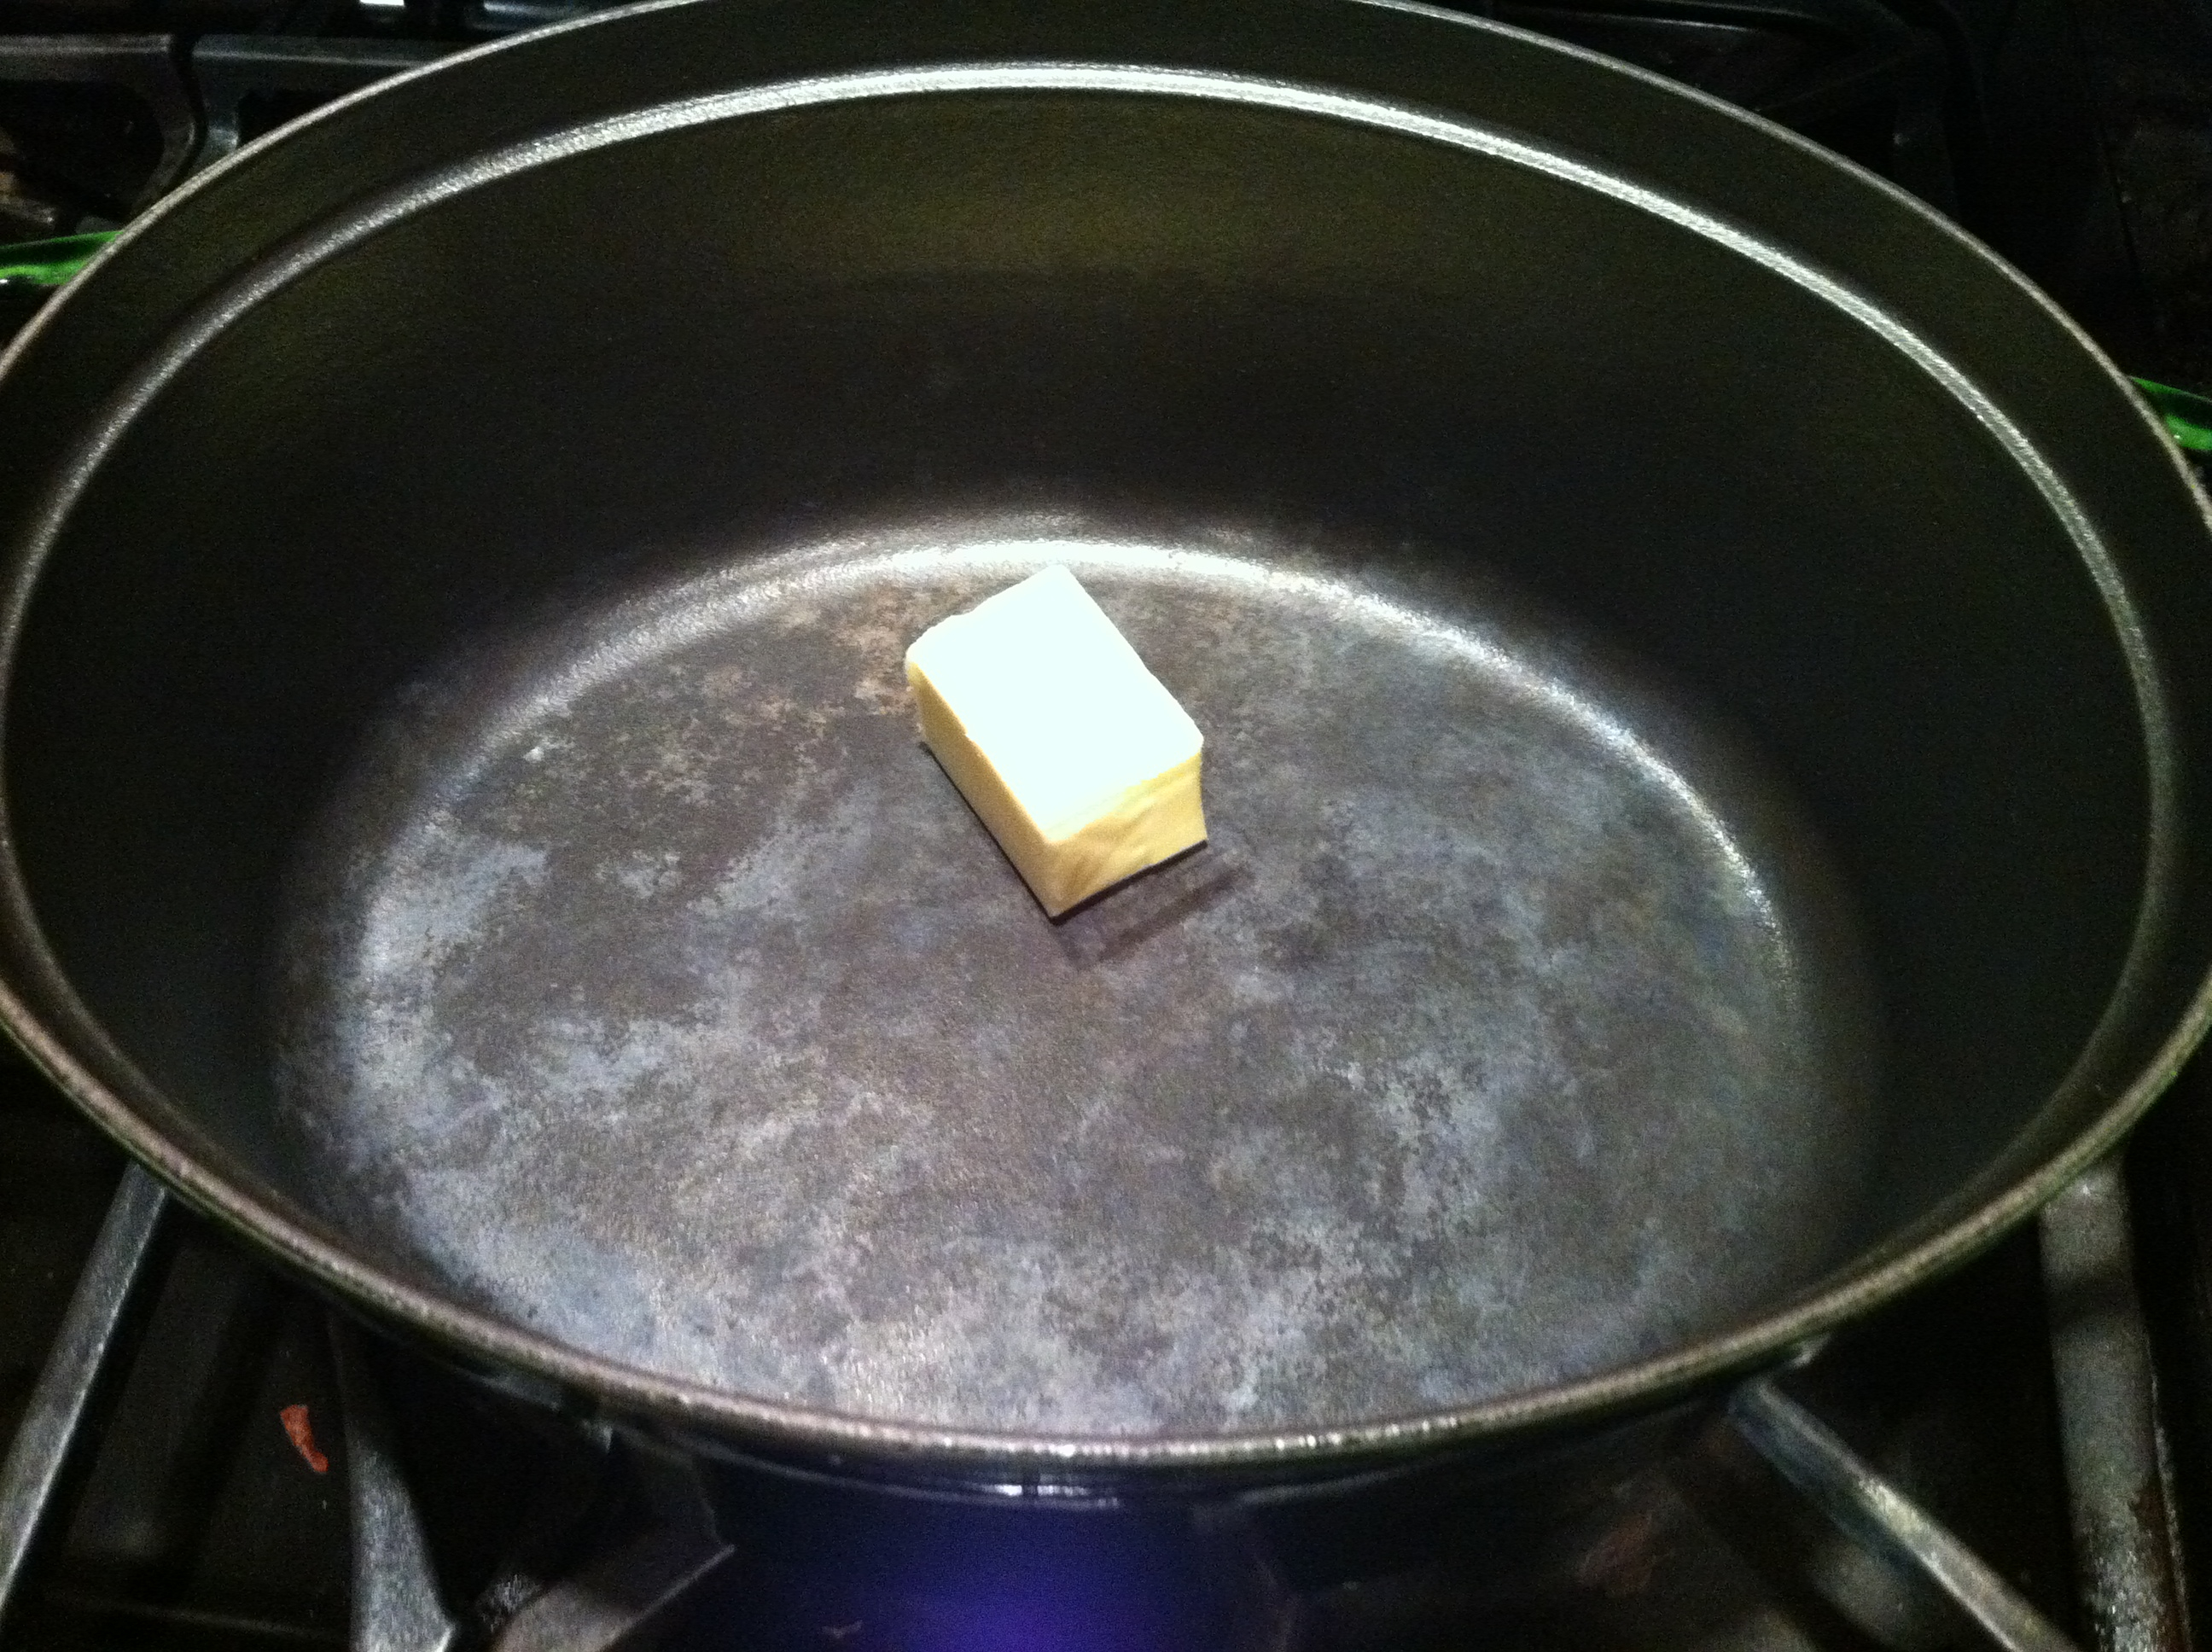 Melting Butter in the Staub Cookware for the Corn Chowder Recipe